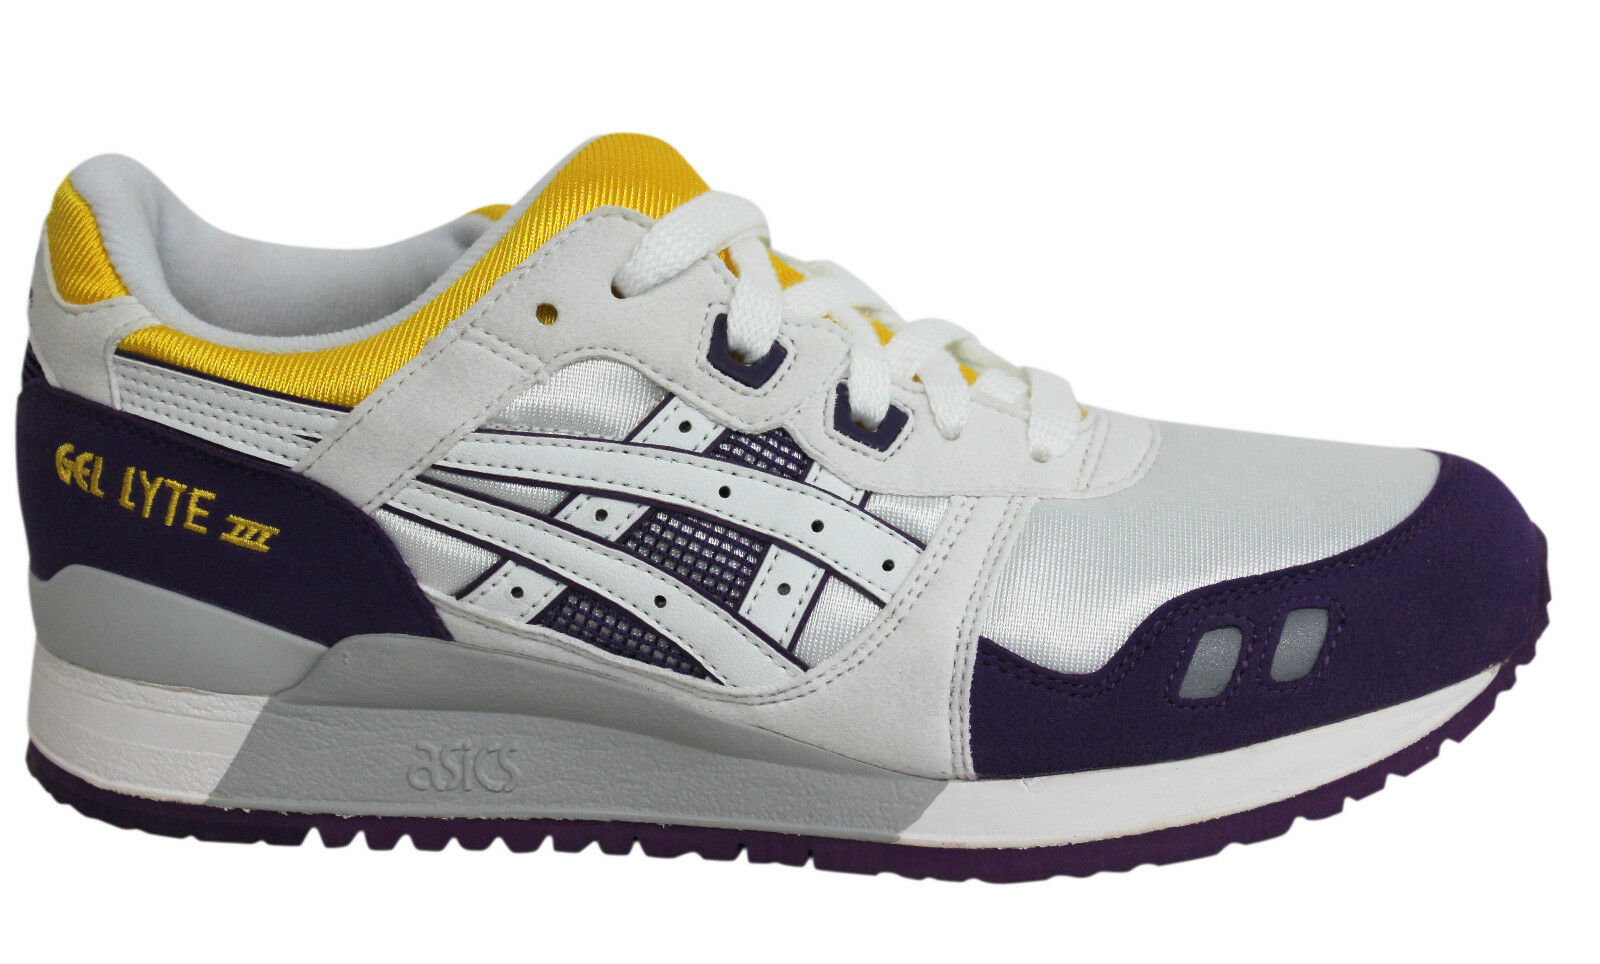 Asics Gel-Lyte III White Purple Lace Up Mens Leather Trainers H305N 0101 D94